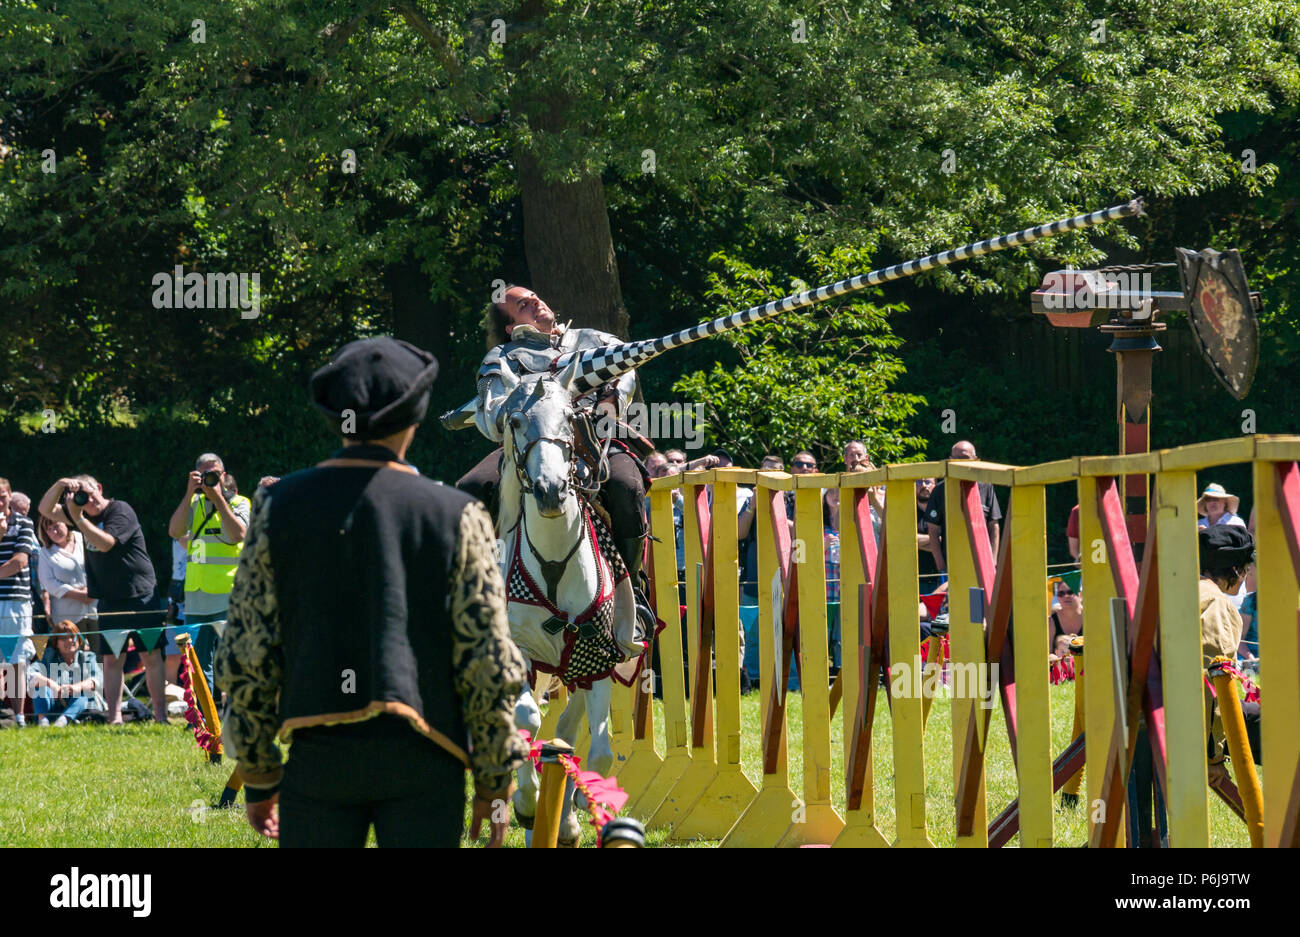 Jousting and Medieval Fair at Linlithgow Palace, Linlithgow, Scotland, United Kingdom, 30th June 2018. Historic Environment Scotland kick off their summer entertainment programme with a fabulous display of Medieval jousting in the grounds of the historic castle. The family fun day includes living history camps, medieval games, crafts, archery, and falconry. The jousting is performed by Les Amis D'Onno equine stunt team based in the Borders. Knight Sir Checkmate Fitzpercy, played by Jacob Martin, riding his horse with a lance - Stock Image